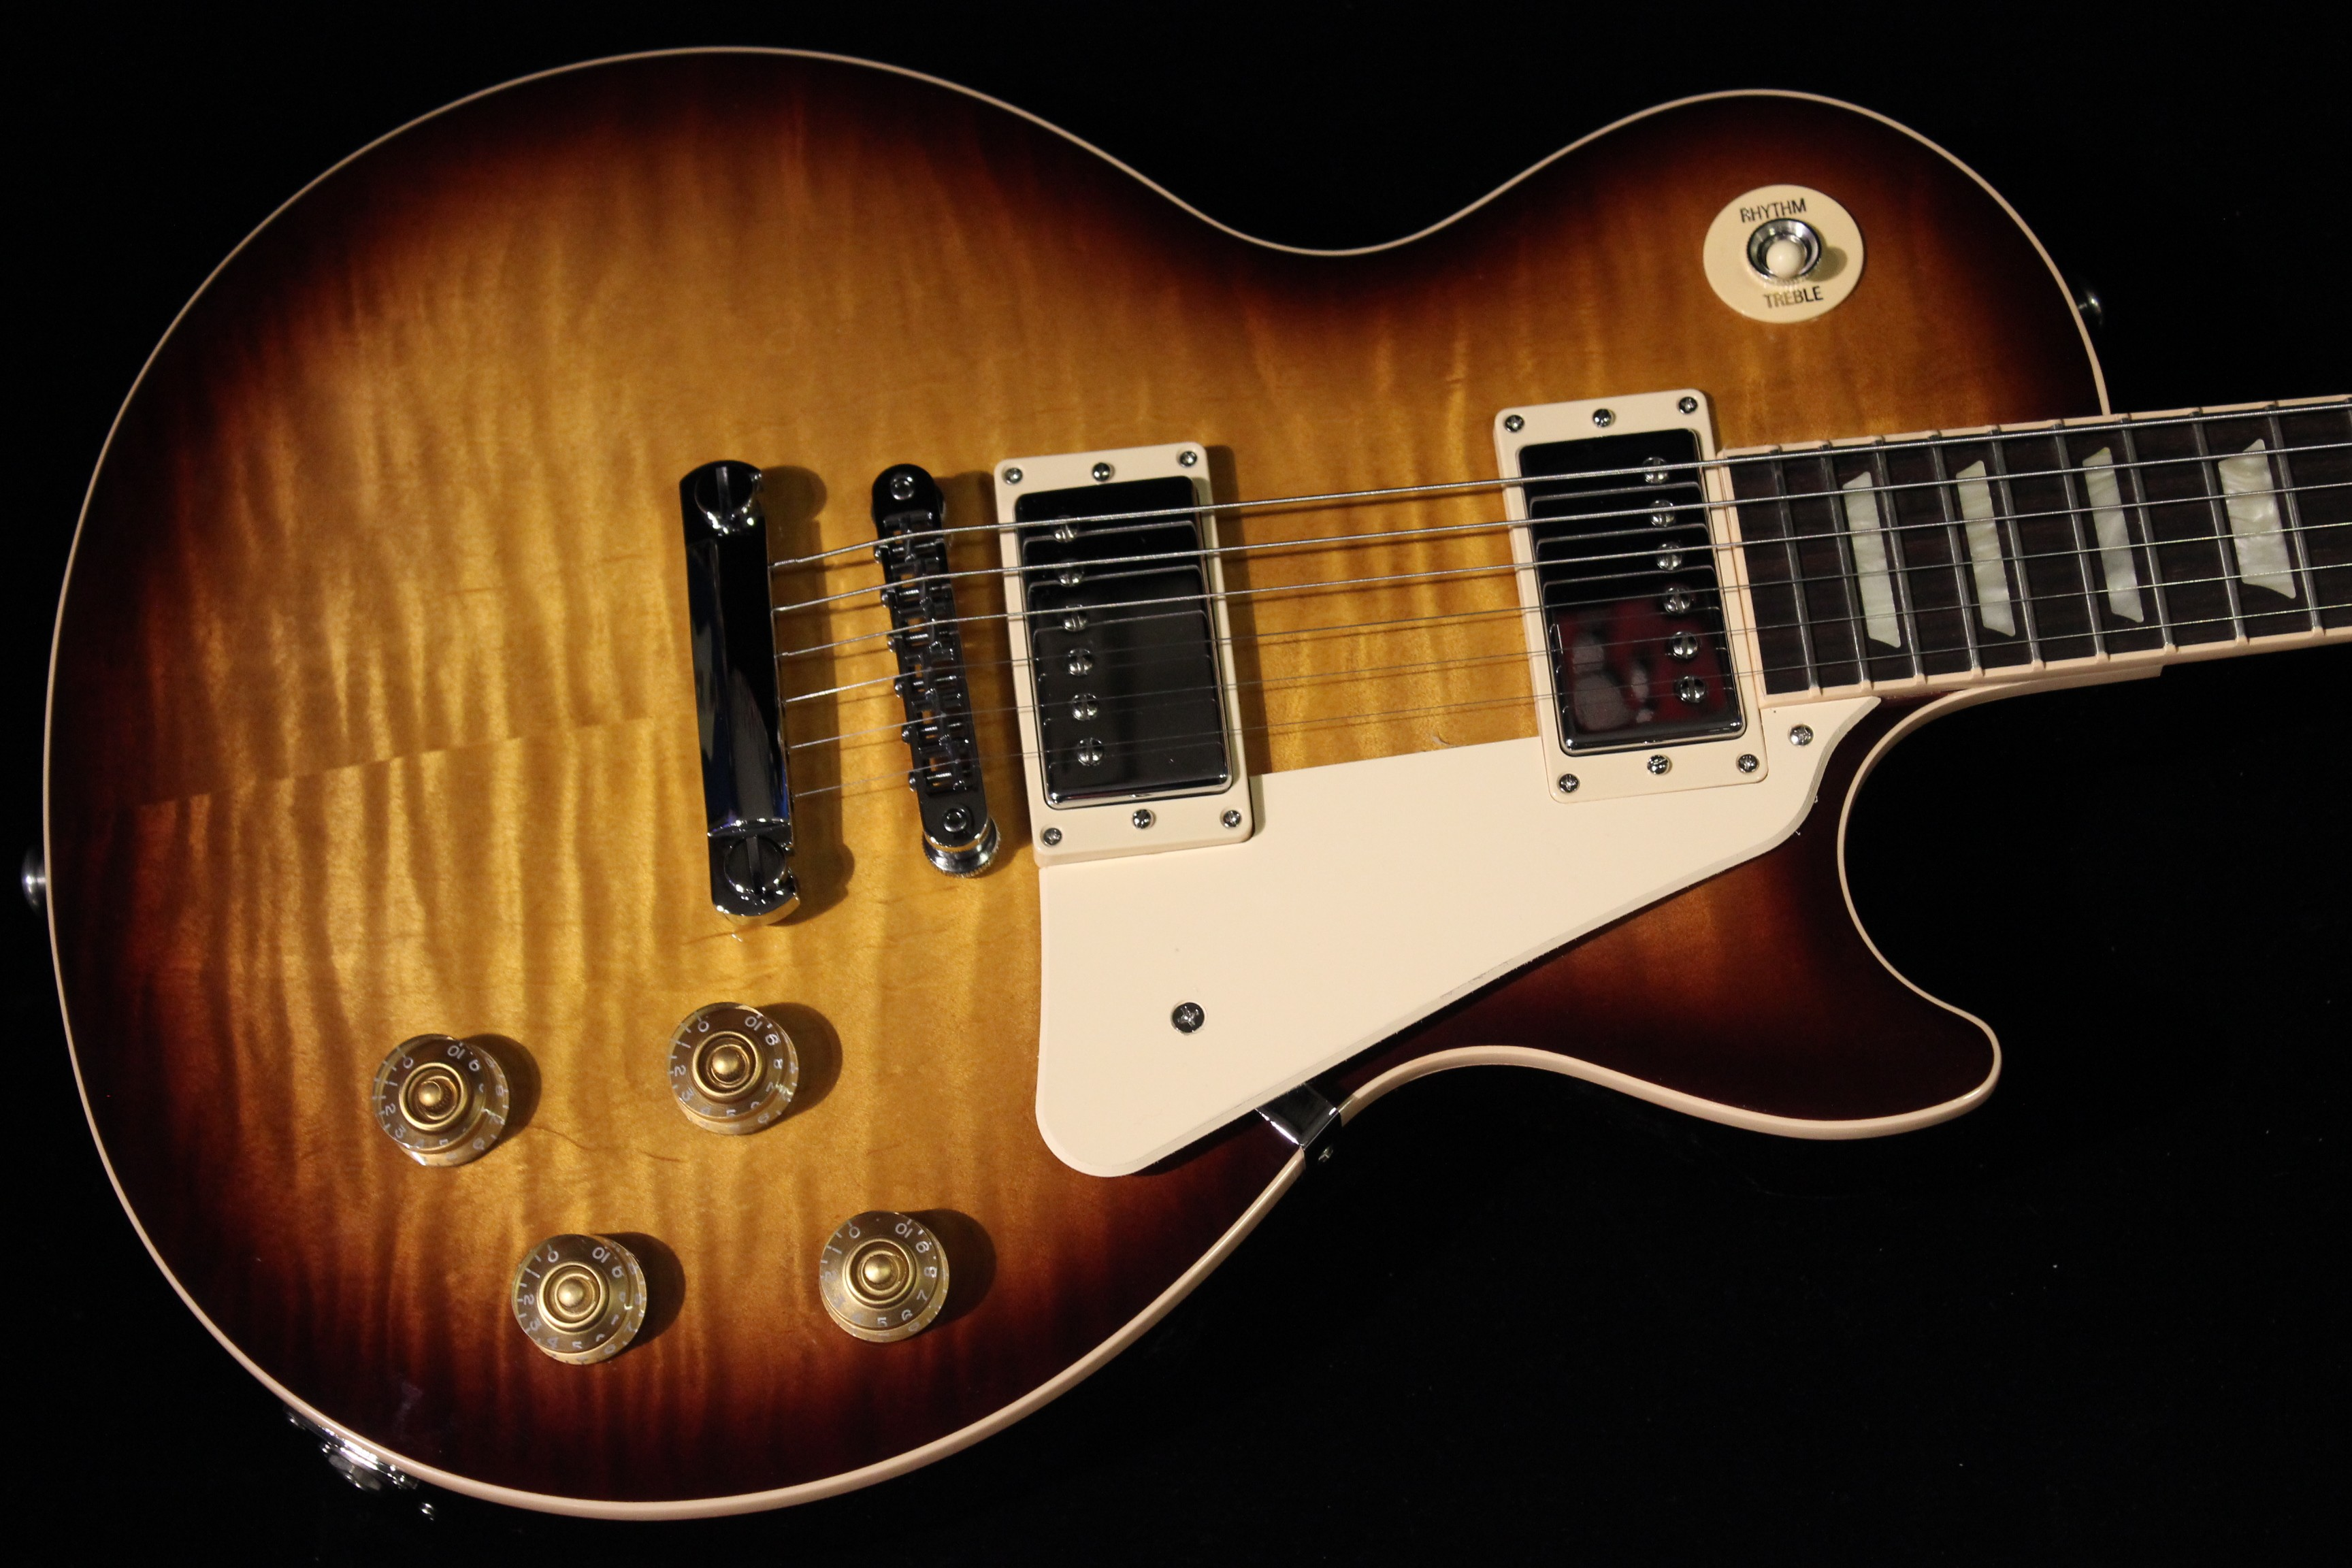 gibson les paul traditional t 2016 desert burst sn 160022225 gino guitars. Black Bedroom Furniture Sets. Home Design Ideas